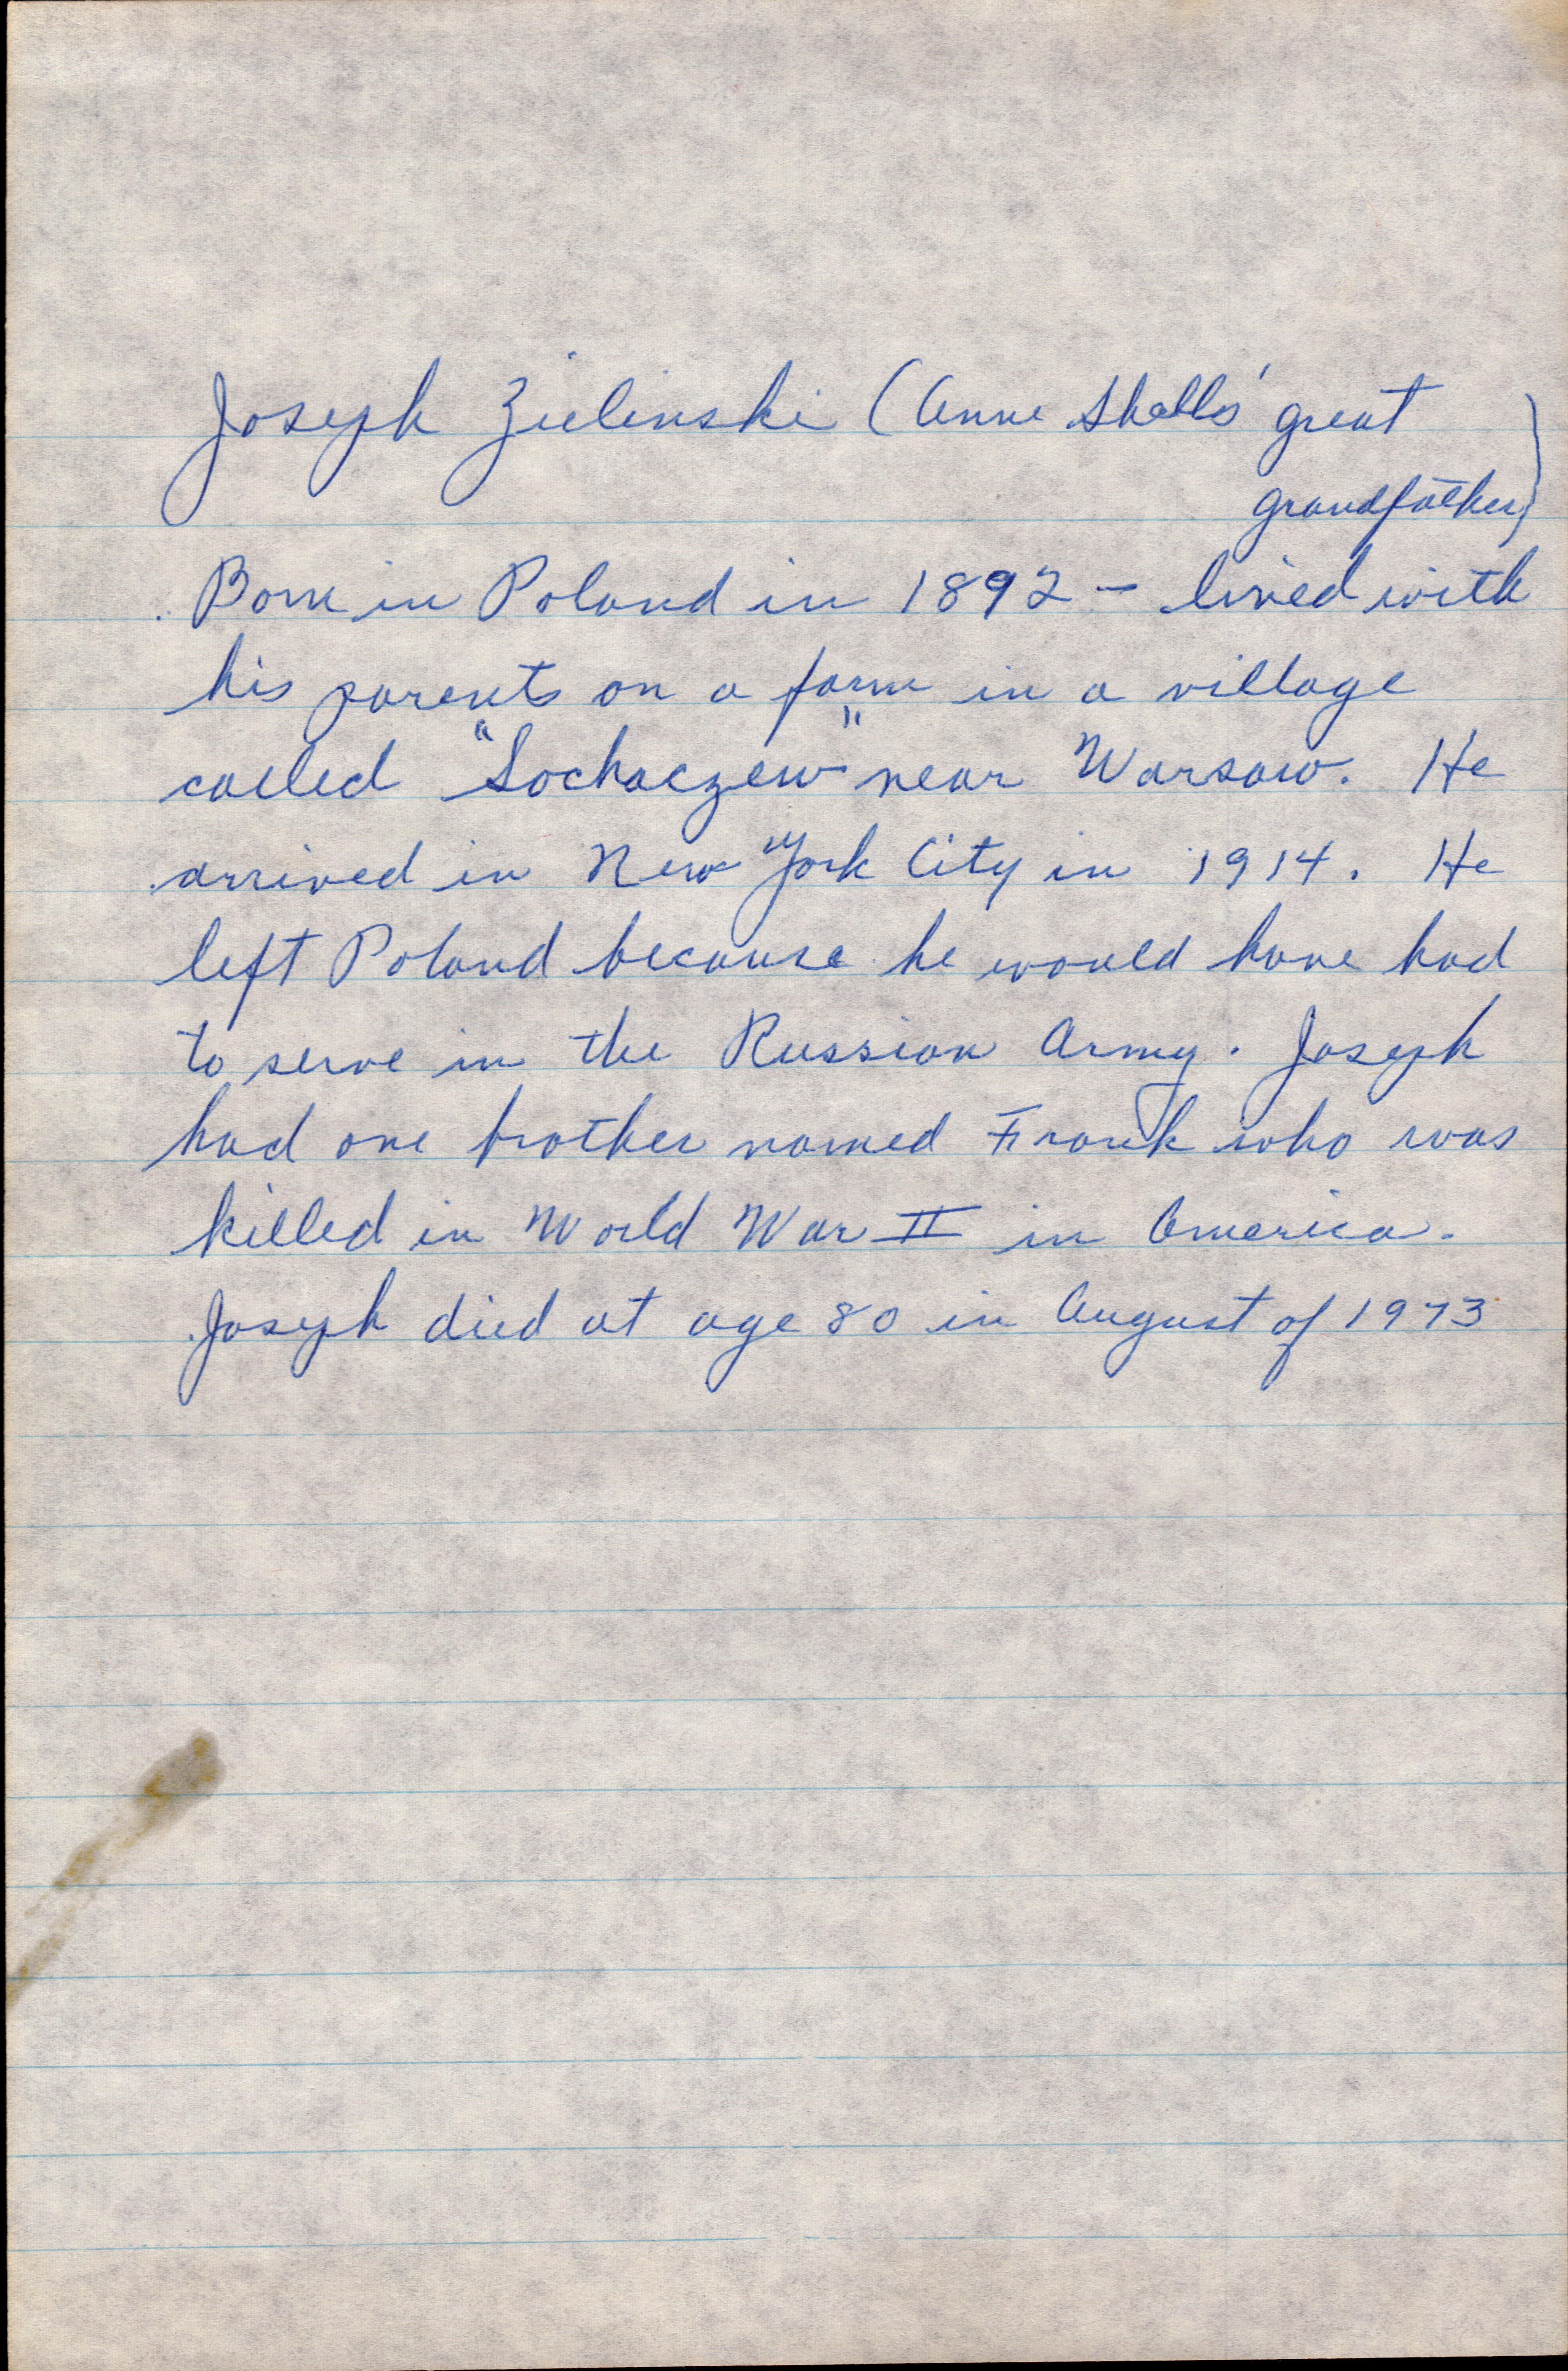 Letter from Grandma Helen 1977 page 3